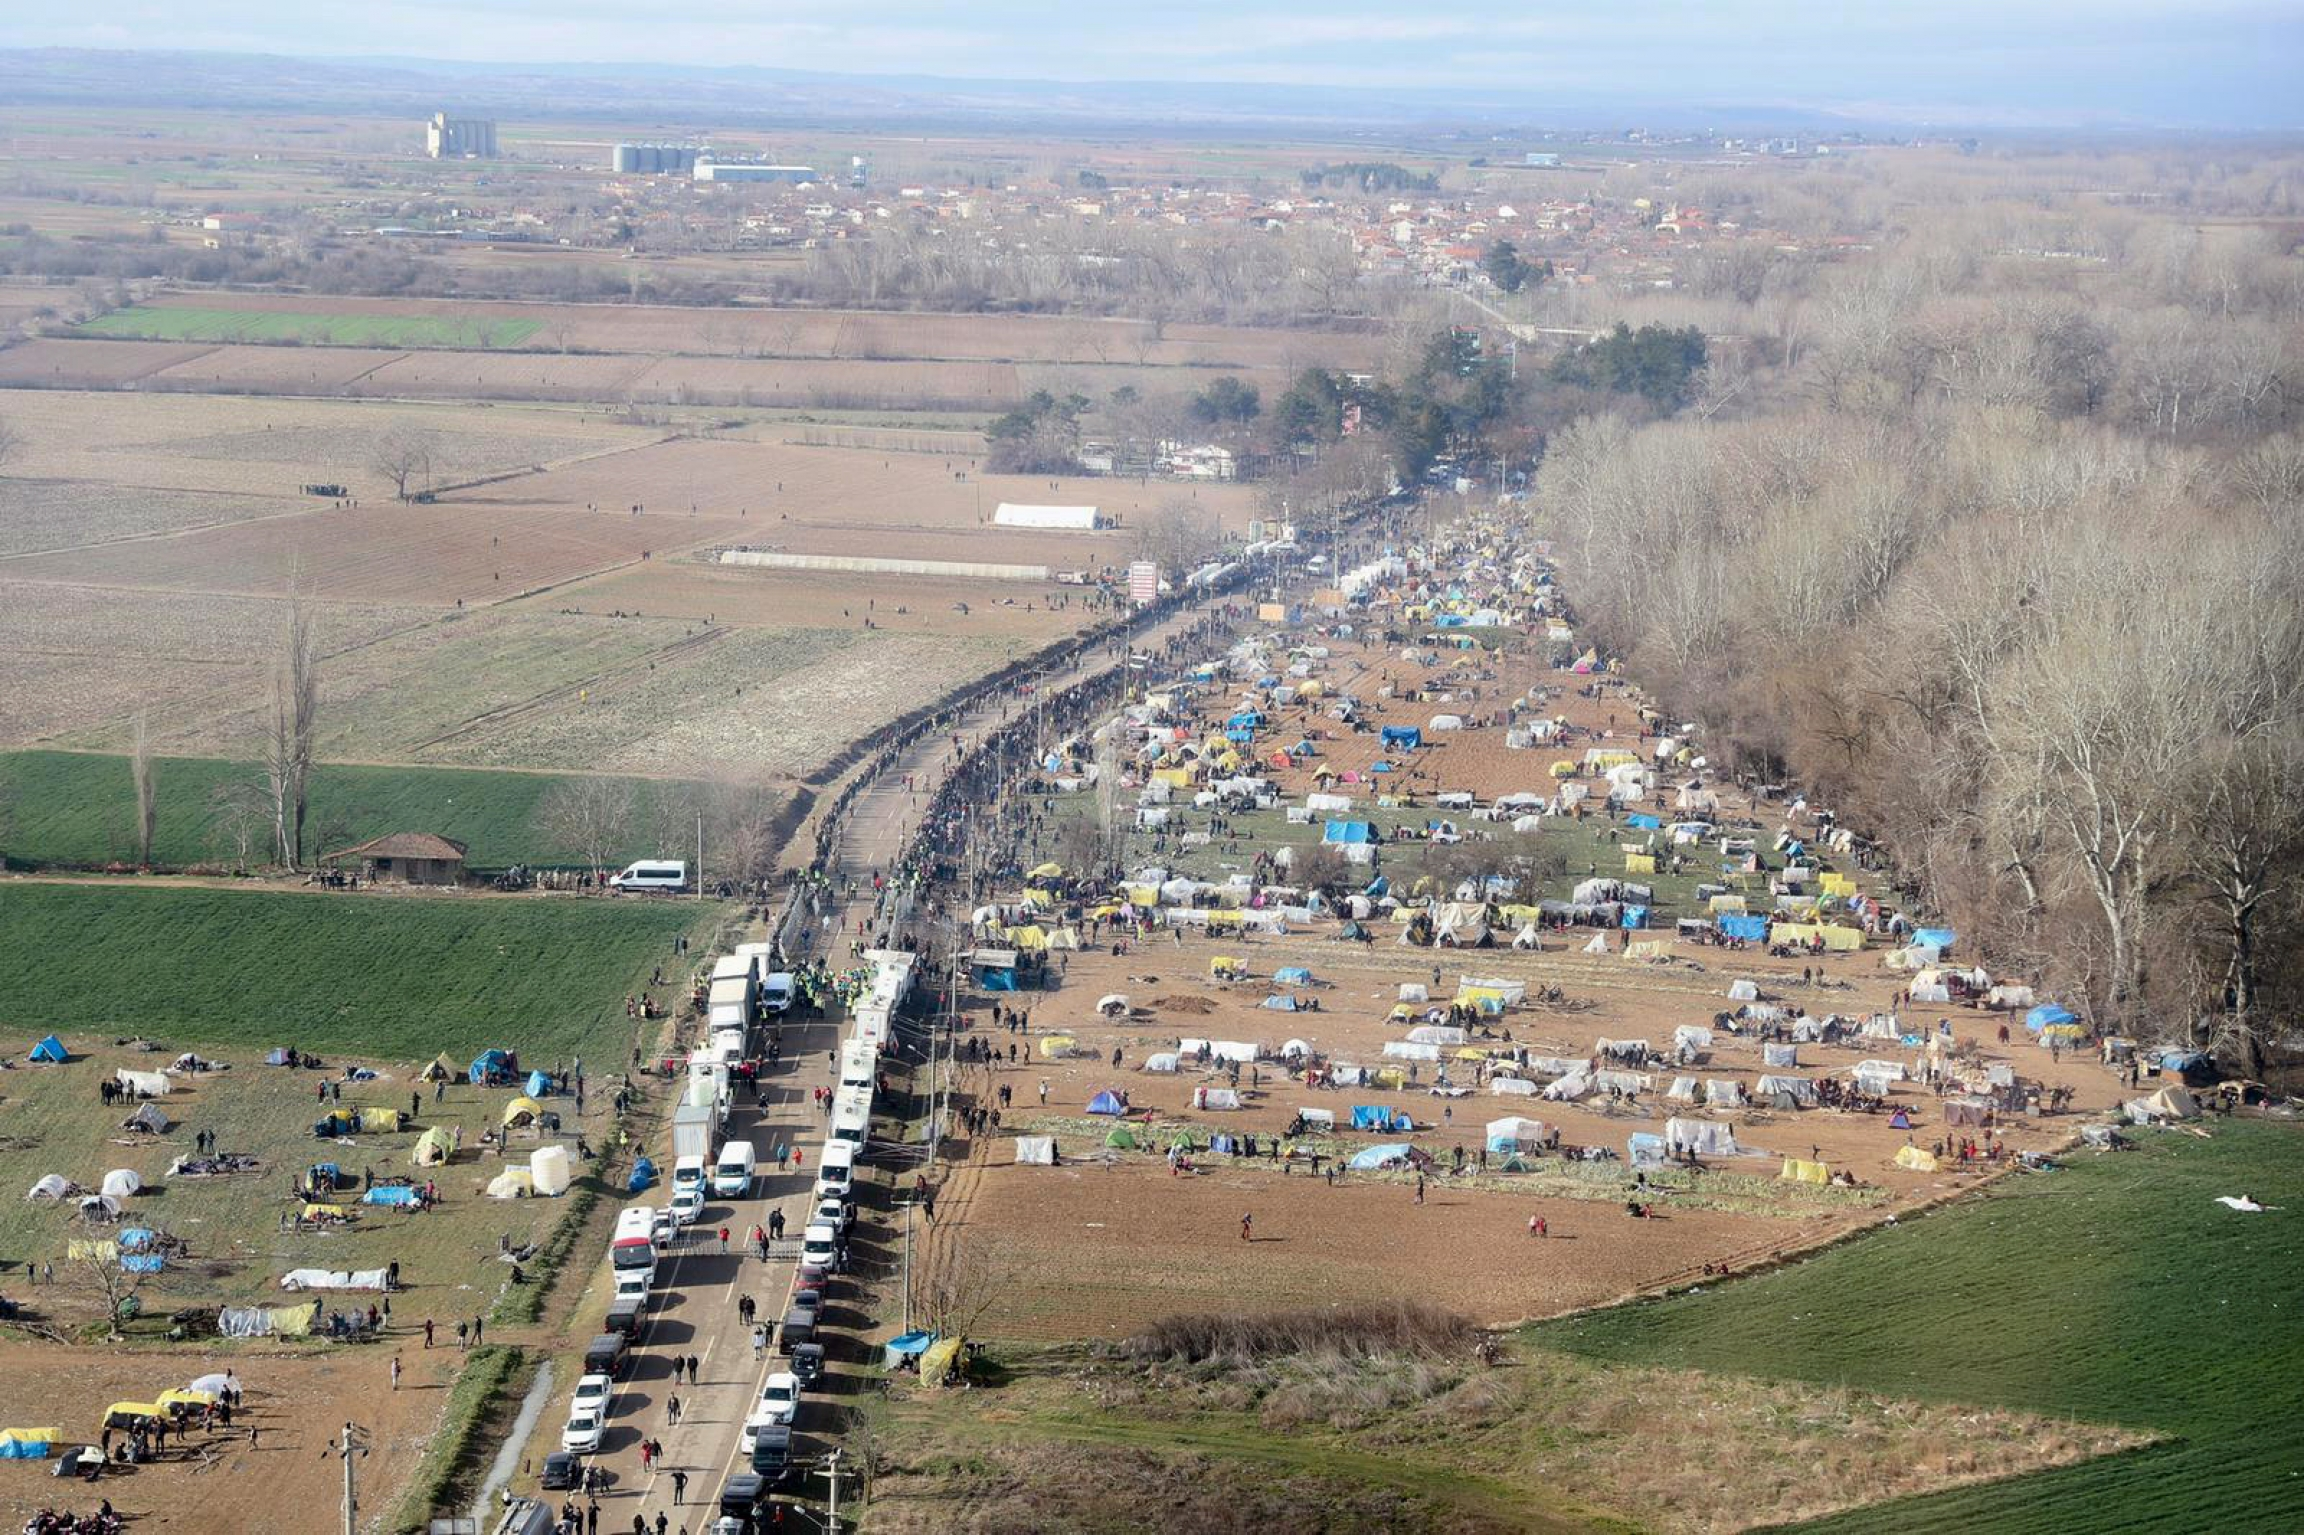 An aerial photo taken from the helicopter of Turkish Interior Minister Suleyman Soylu shows migrants waiting in line to receive food at Turkey's Pazarkule border crossing with Greece's Kastanies, near Edirne in Turkey, on March 5, 2020.